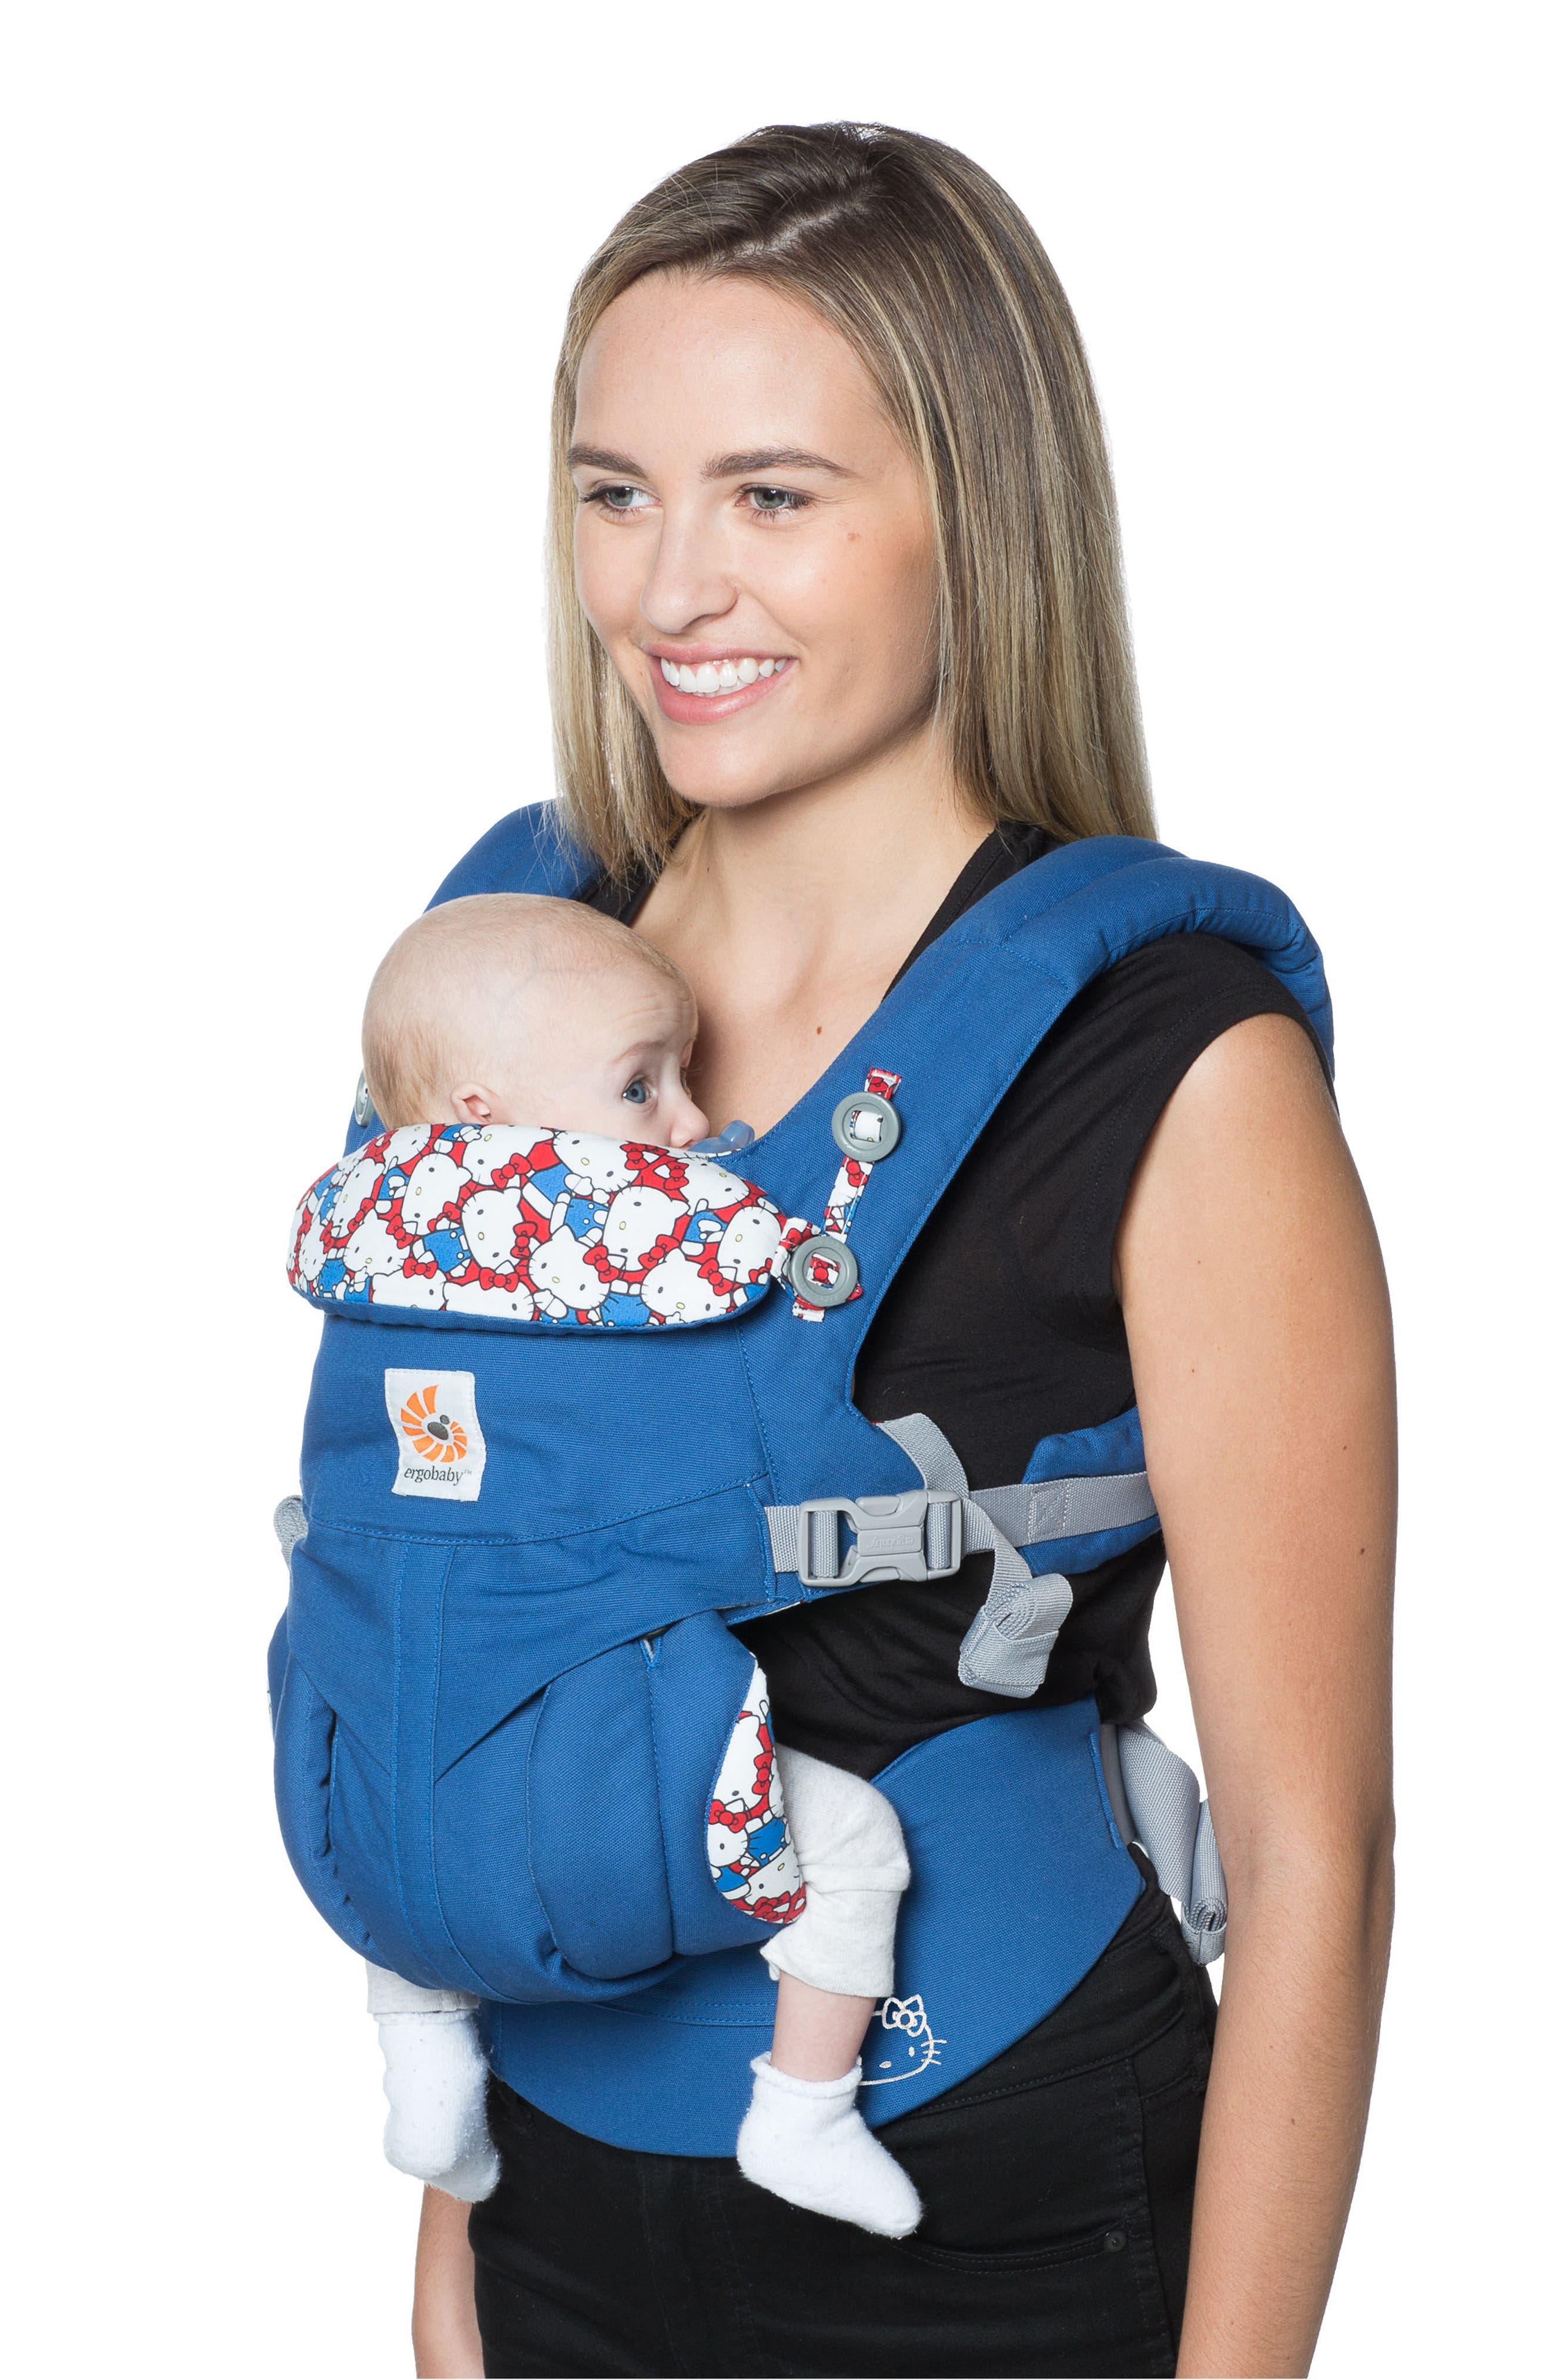 x Hello Kitty<sup>®</sup> Omni 360 Baby Carrier,                             Alternate thumbnail 2, color,                             420